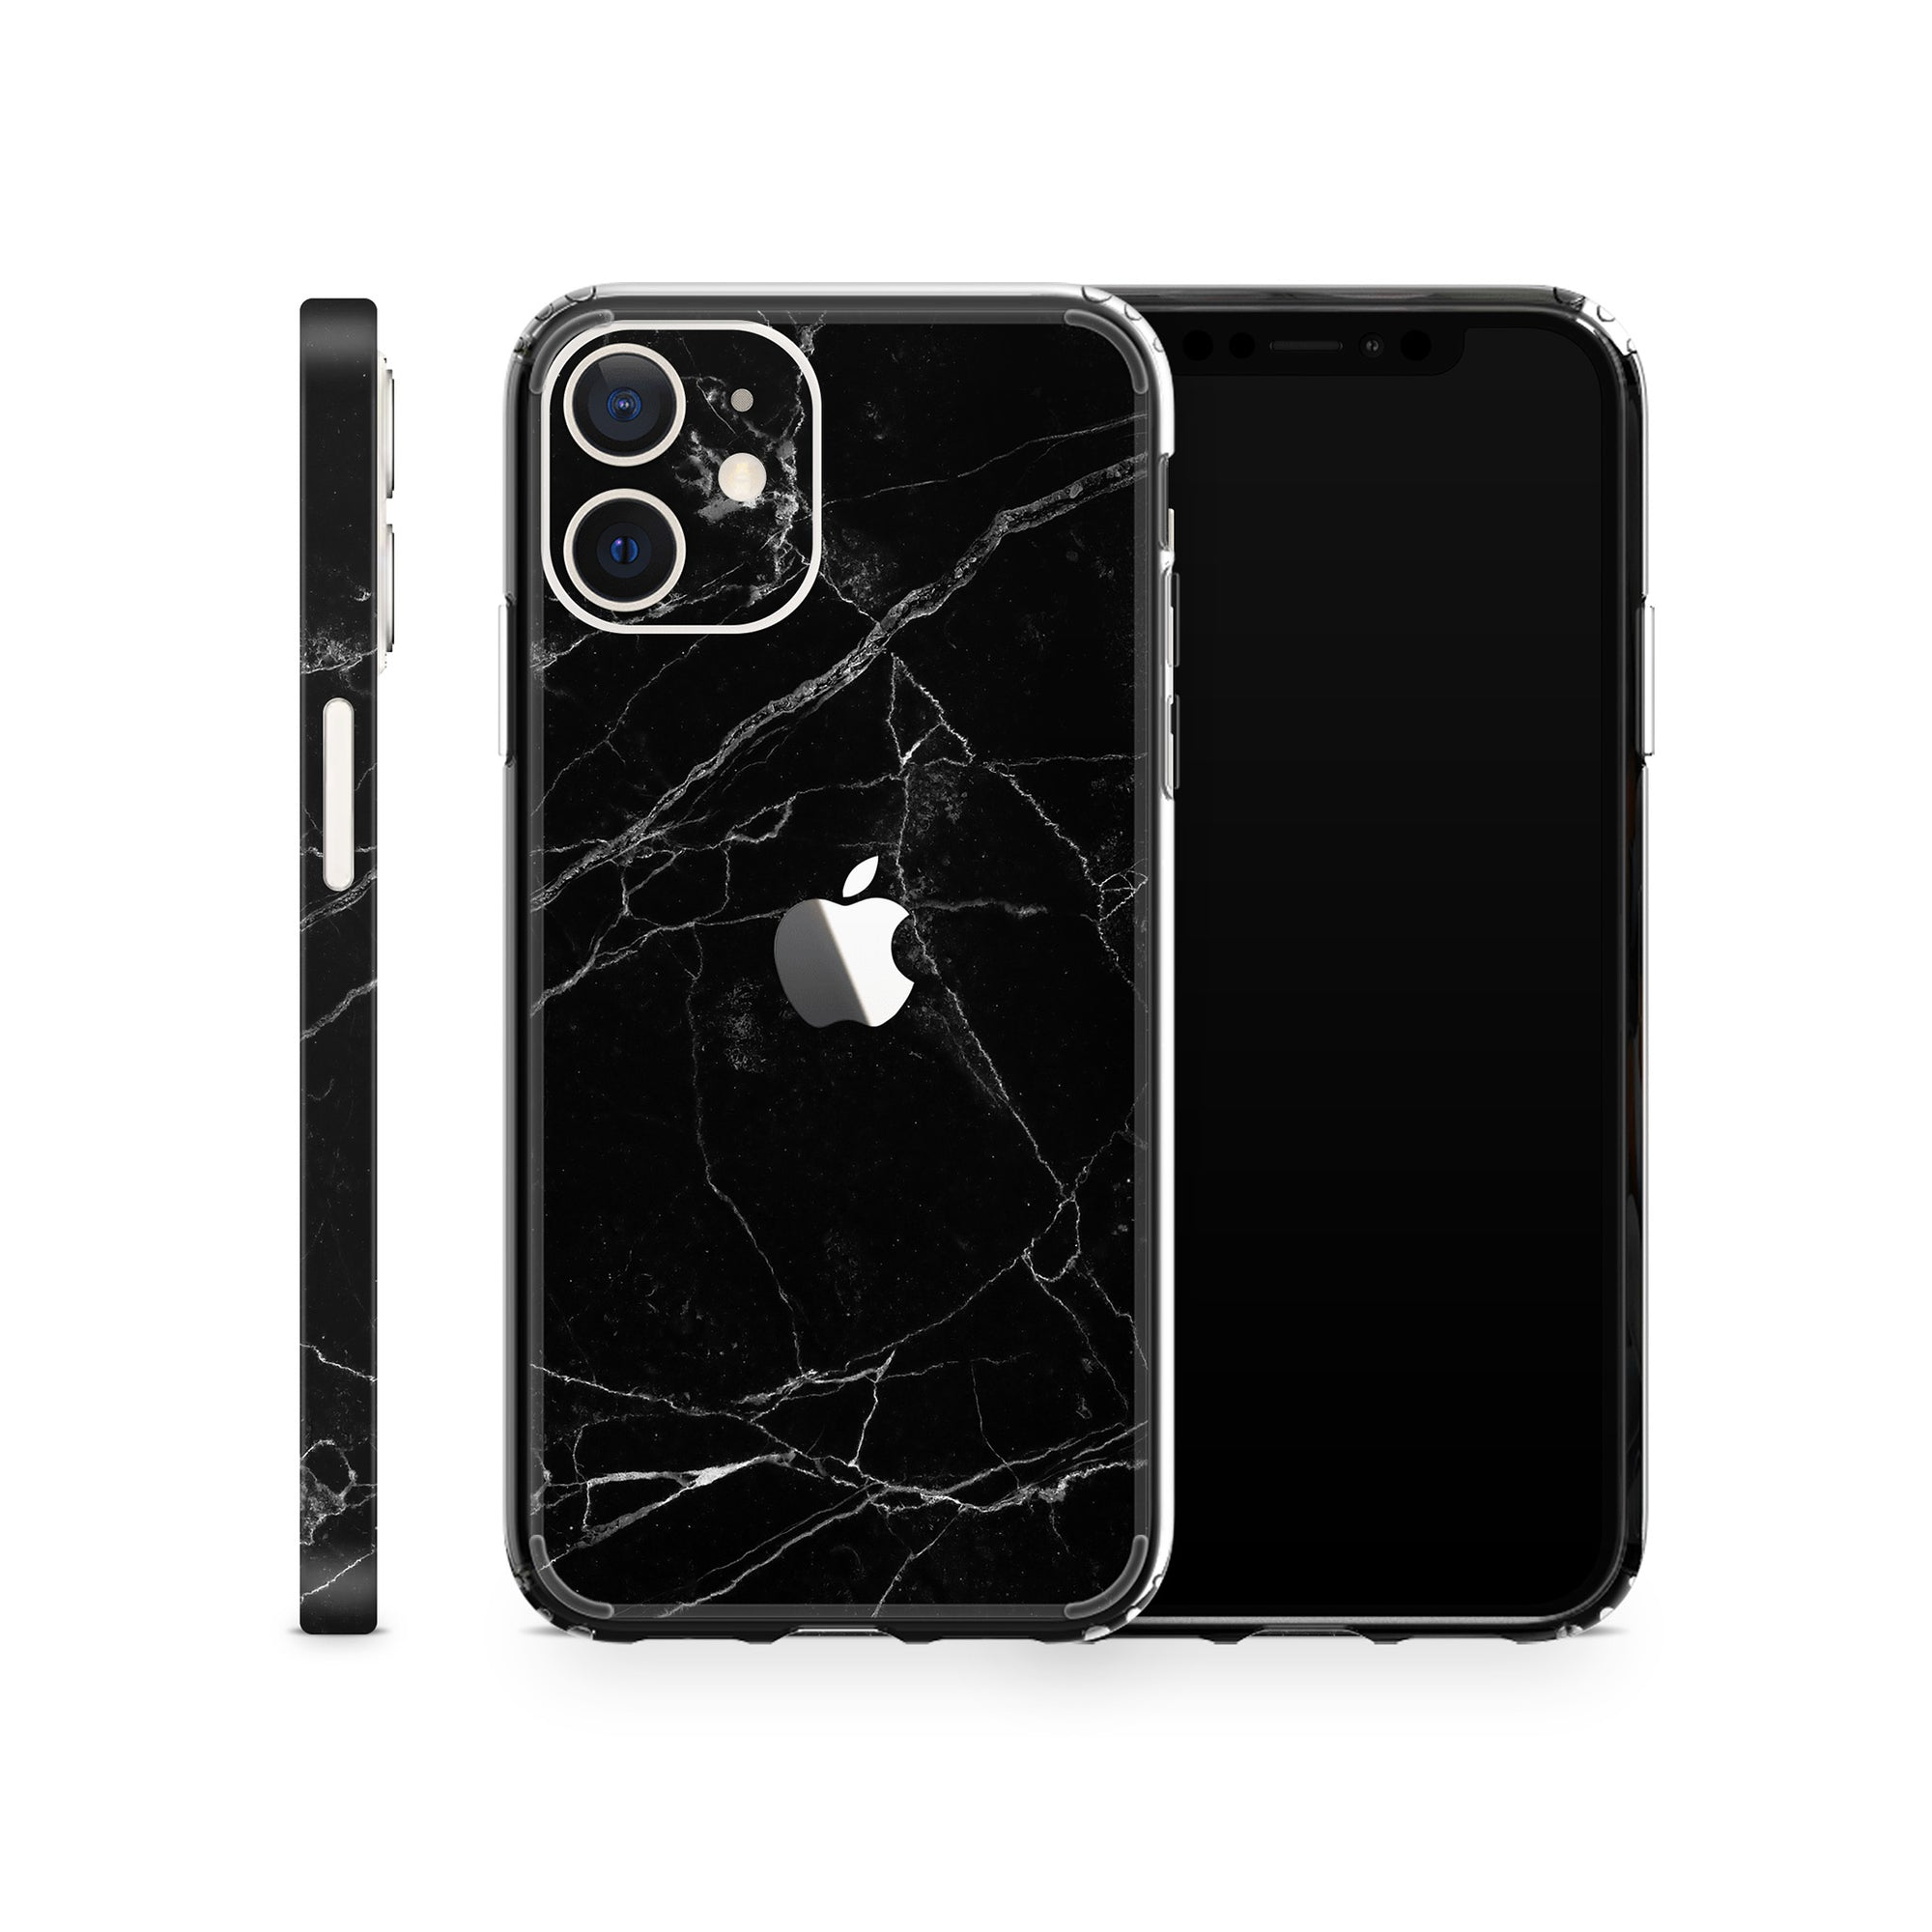 iPhone Case 12 Mini Black Marble